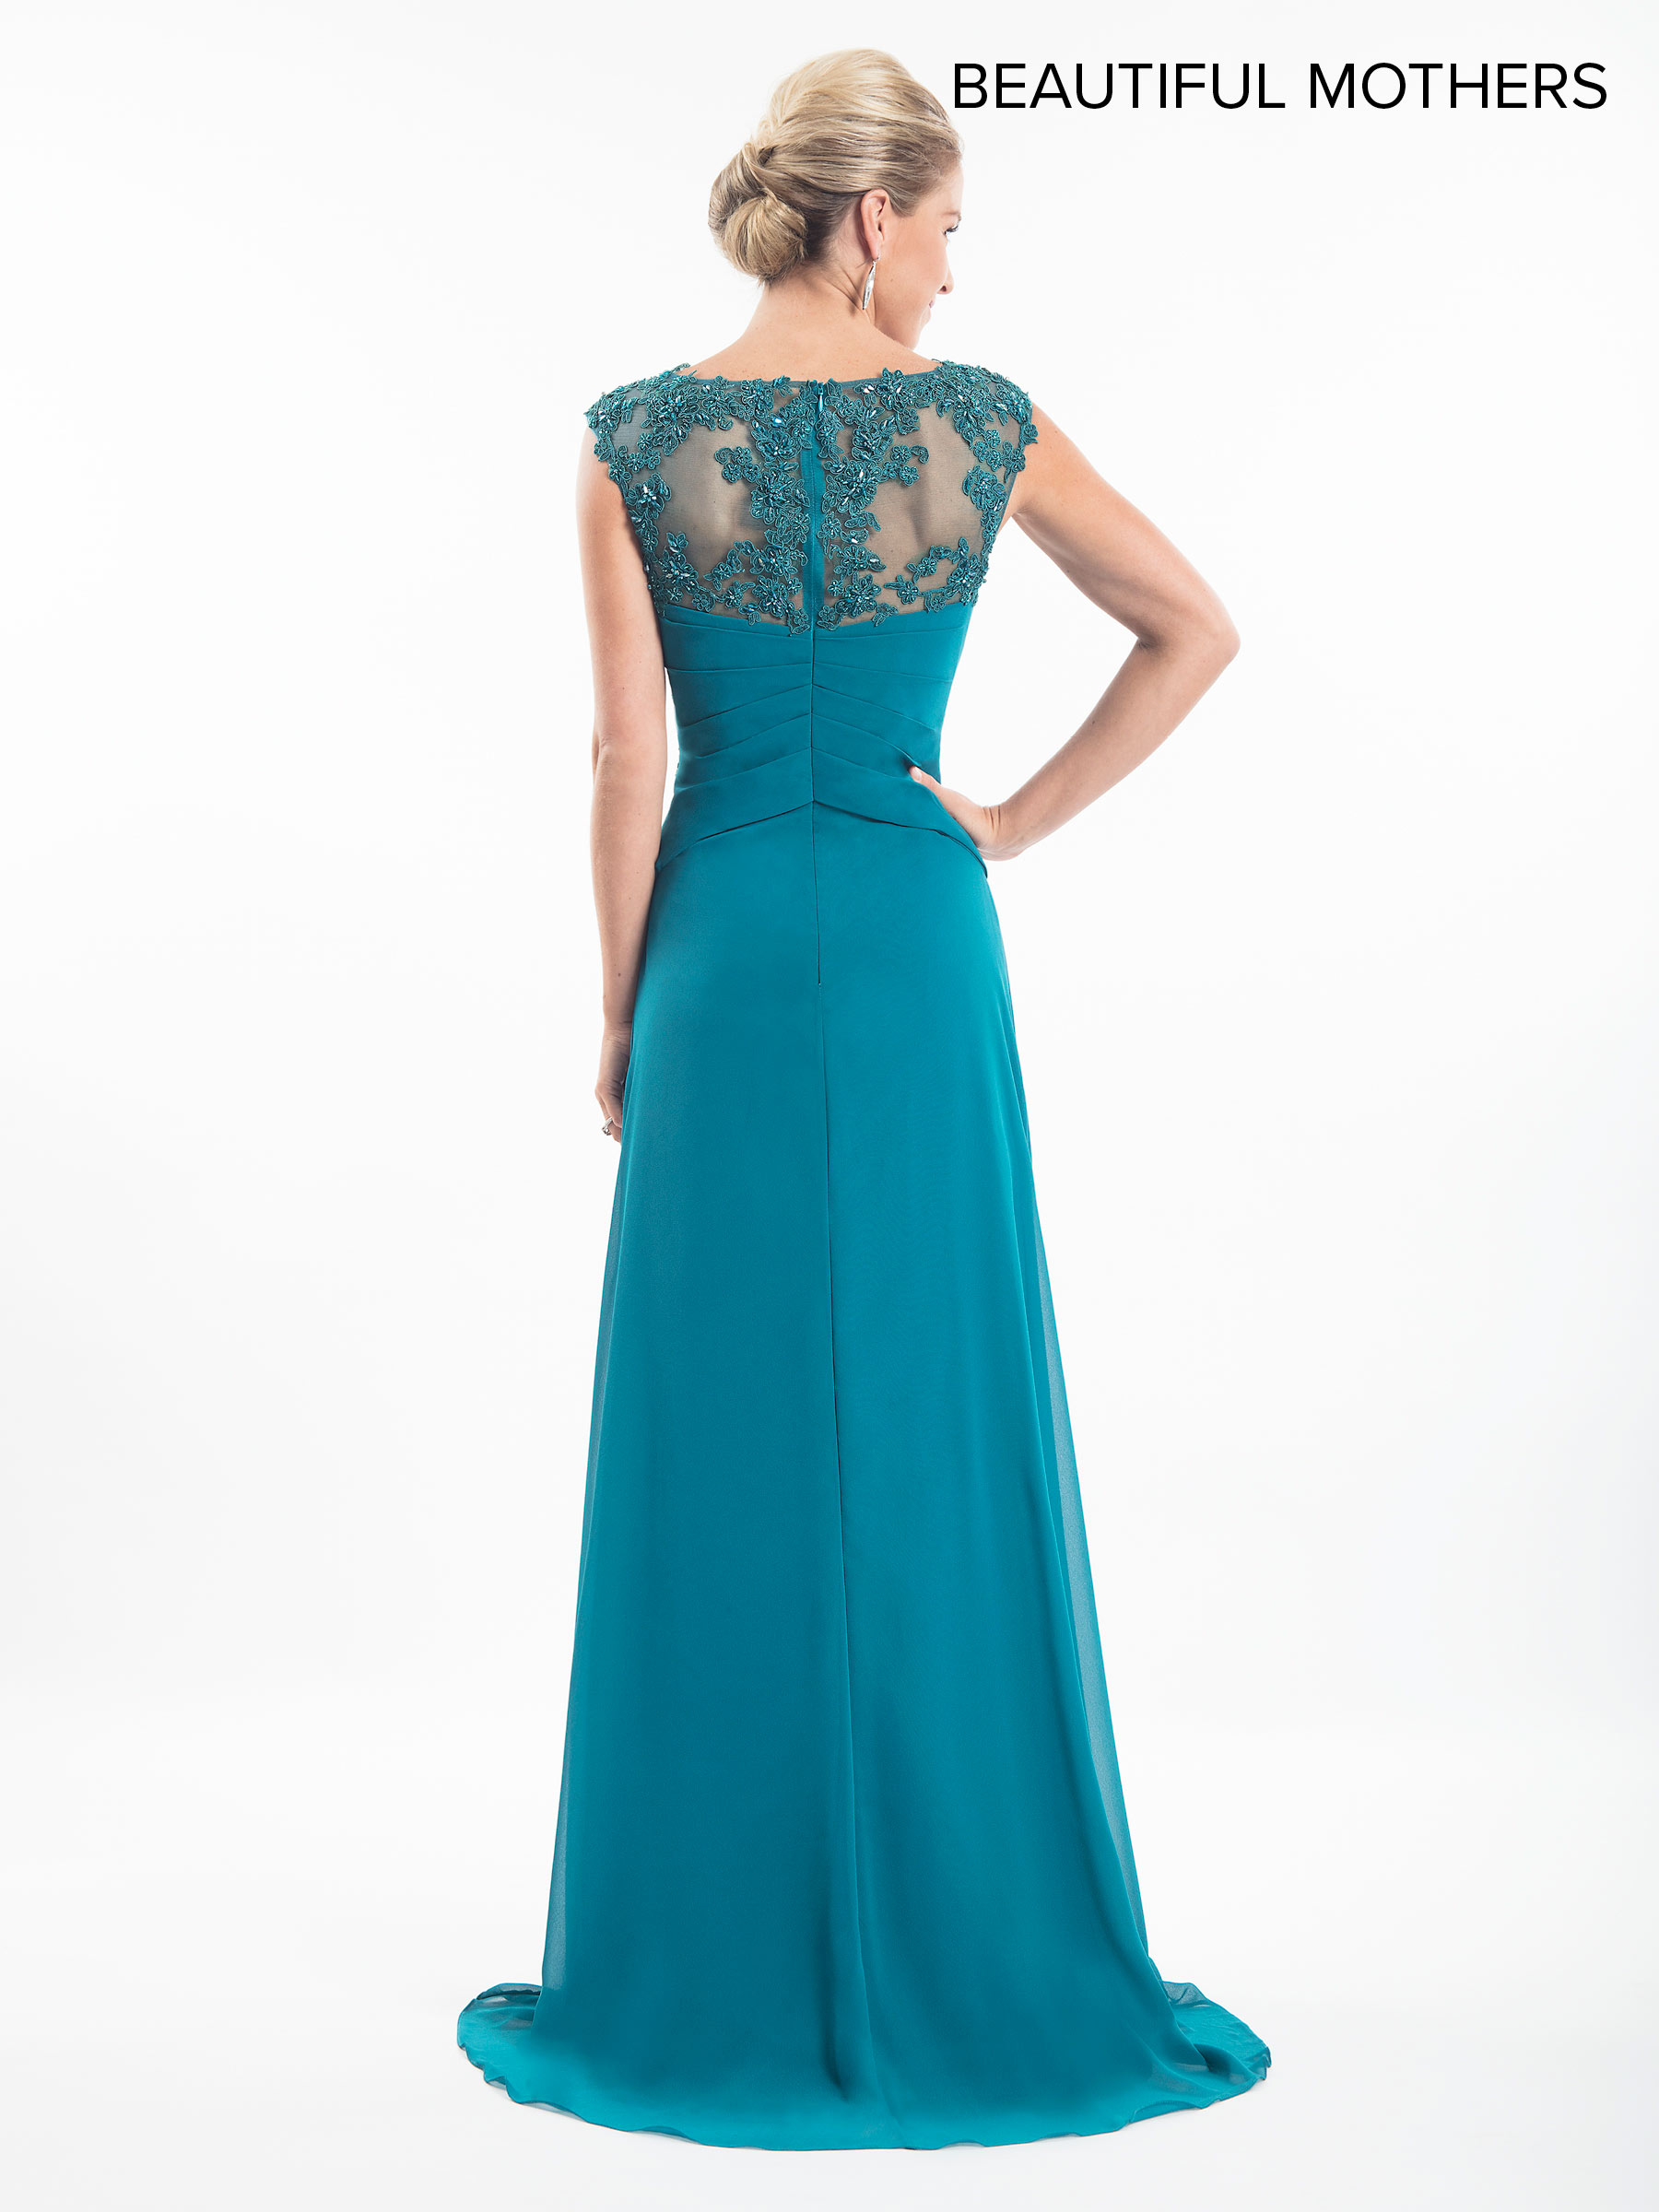 Mother Of The Bride Dresses | Beautiful Mothers | Style - MB8018